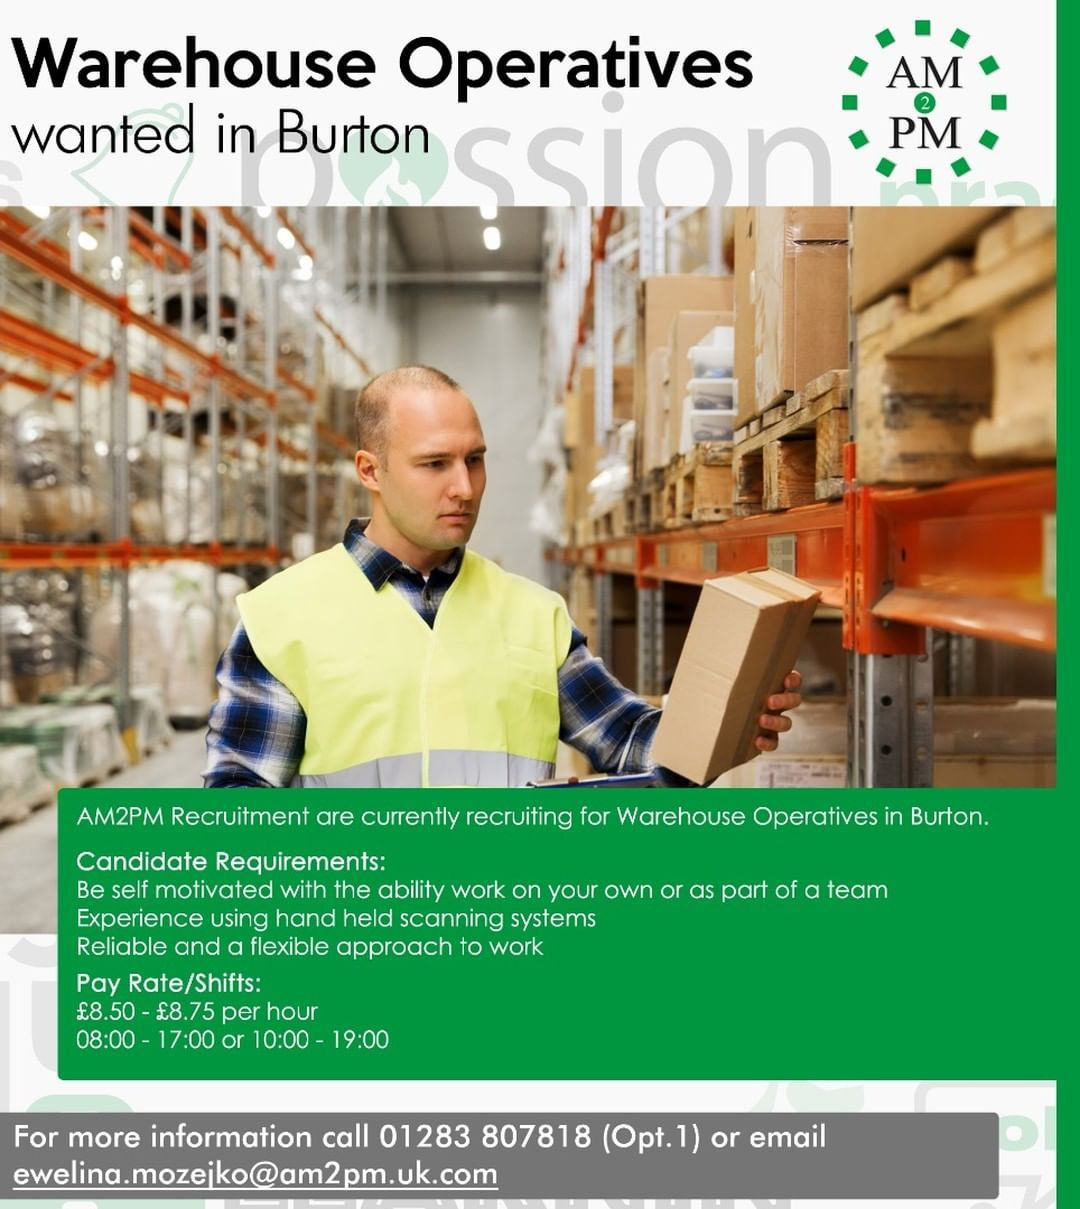 Am2pm Recruitment Is Looking For Warehouse Operatives For A Client Based In Burton Pay Rate 8 50 8 75 Per H Warehouse Jobs Recruitment Agencies Job Seeker